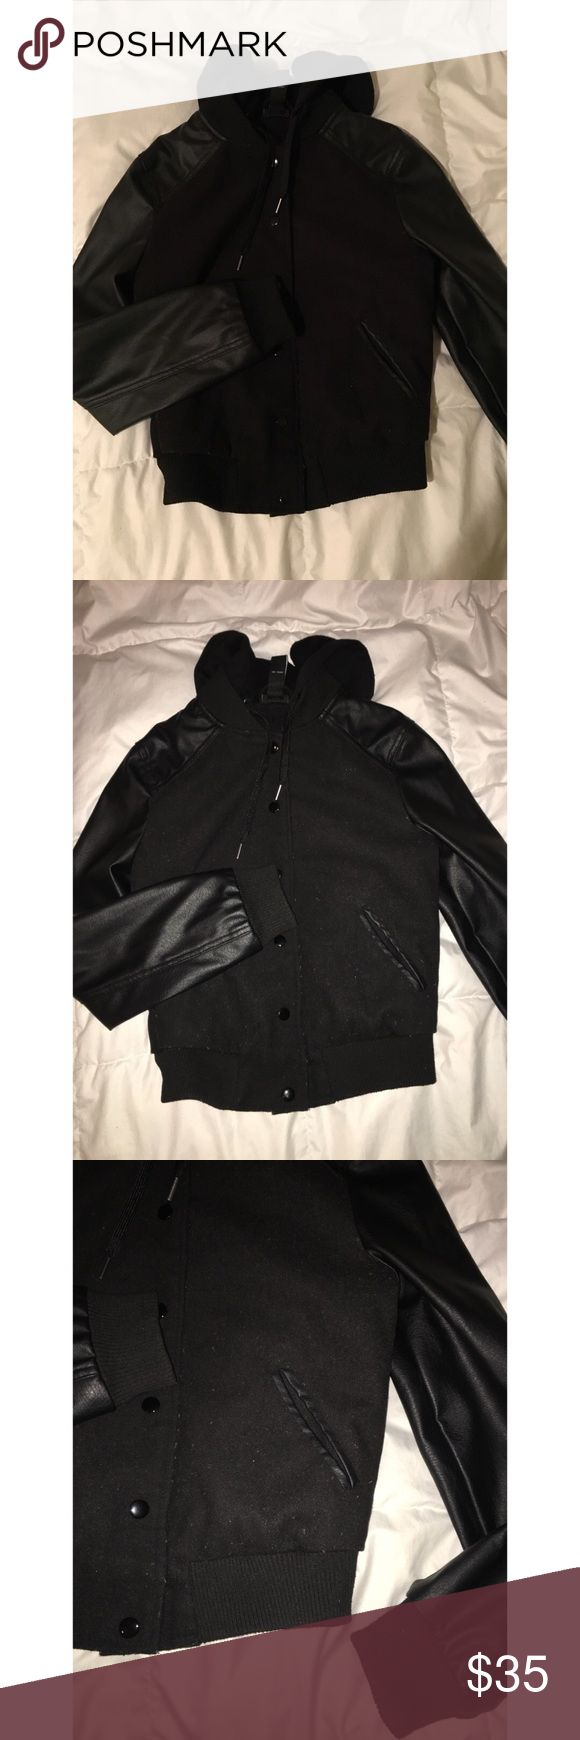 Hooded bomber jacket Black faux leather sleeve bomber jacket from Rue21. Some slight pilling as shown in photos, but other than that it's in good condition! Rue21 Jackets & Coats